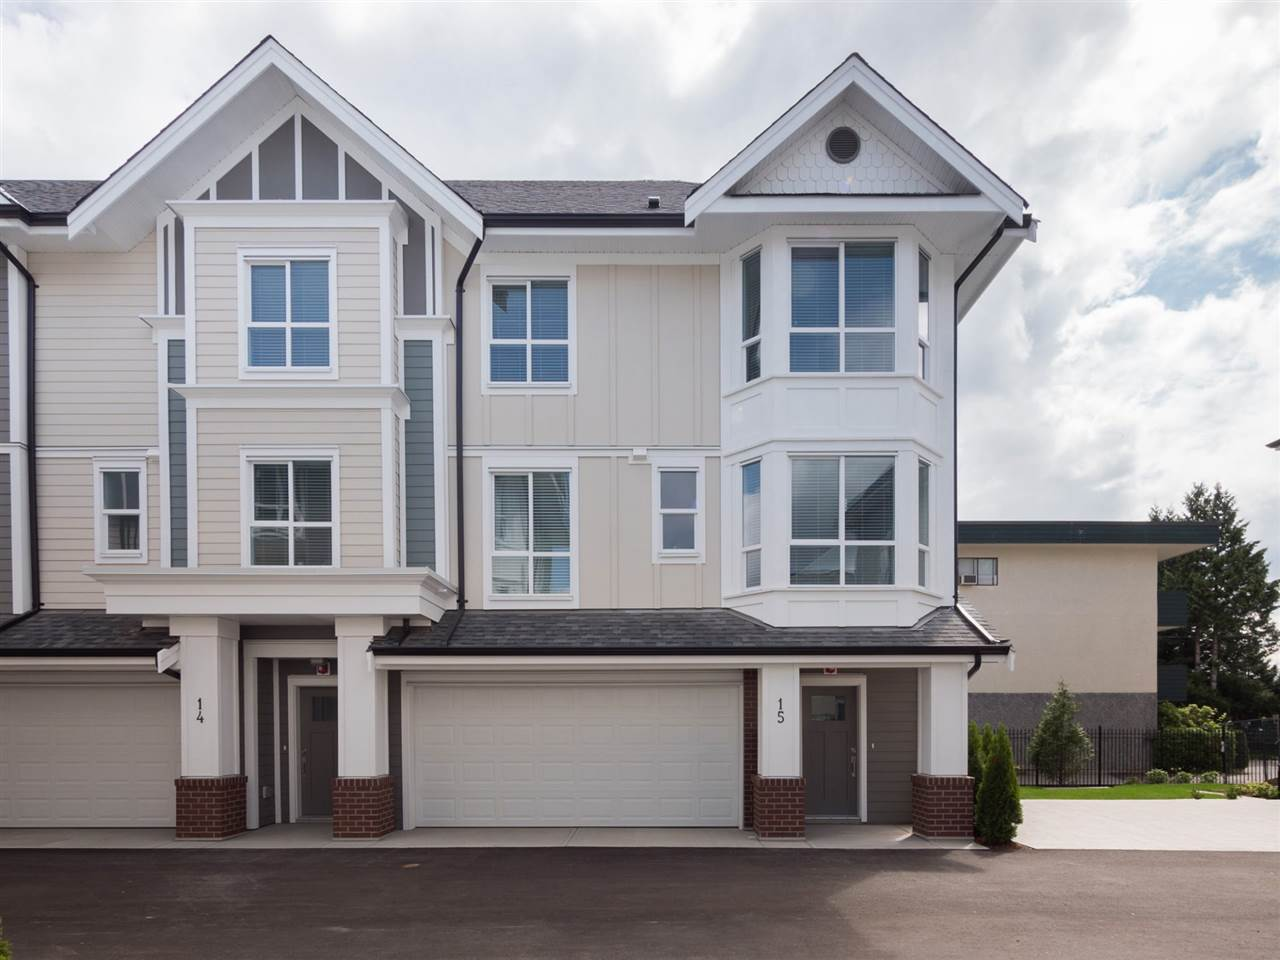 Over 70% sold!! Don't wait only 6 units remaining in this beautiful 21 unit townhouse development in the heart of Langley city. 3 bedroom floor plans for 1355 sqft to 1520 sqft all the TRUE side by side double garages. Beautifully finished with classic yet modern finishes. Open floor concept with large kitchen featuring stainless steel appliances, quartz countertops, white shaker cabinets with soft close hinges. Large living/dining rooms with 9 foot ceilings and powder room on main floor, perfect for entertaining. Upstairs features three bedrooms, laundry and beautiful master en suite with double sinks. Large upper and lower decks complete with small yard space. Extra storage in garages! Ready for occupancy.